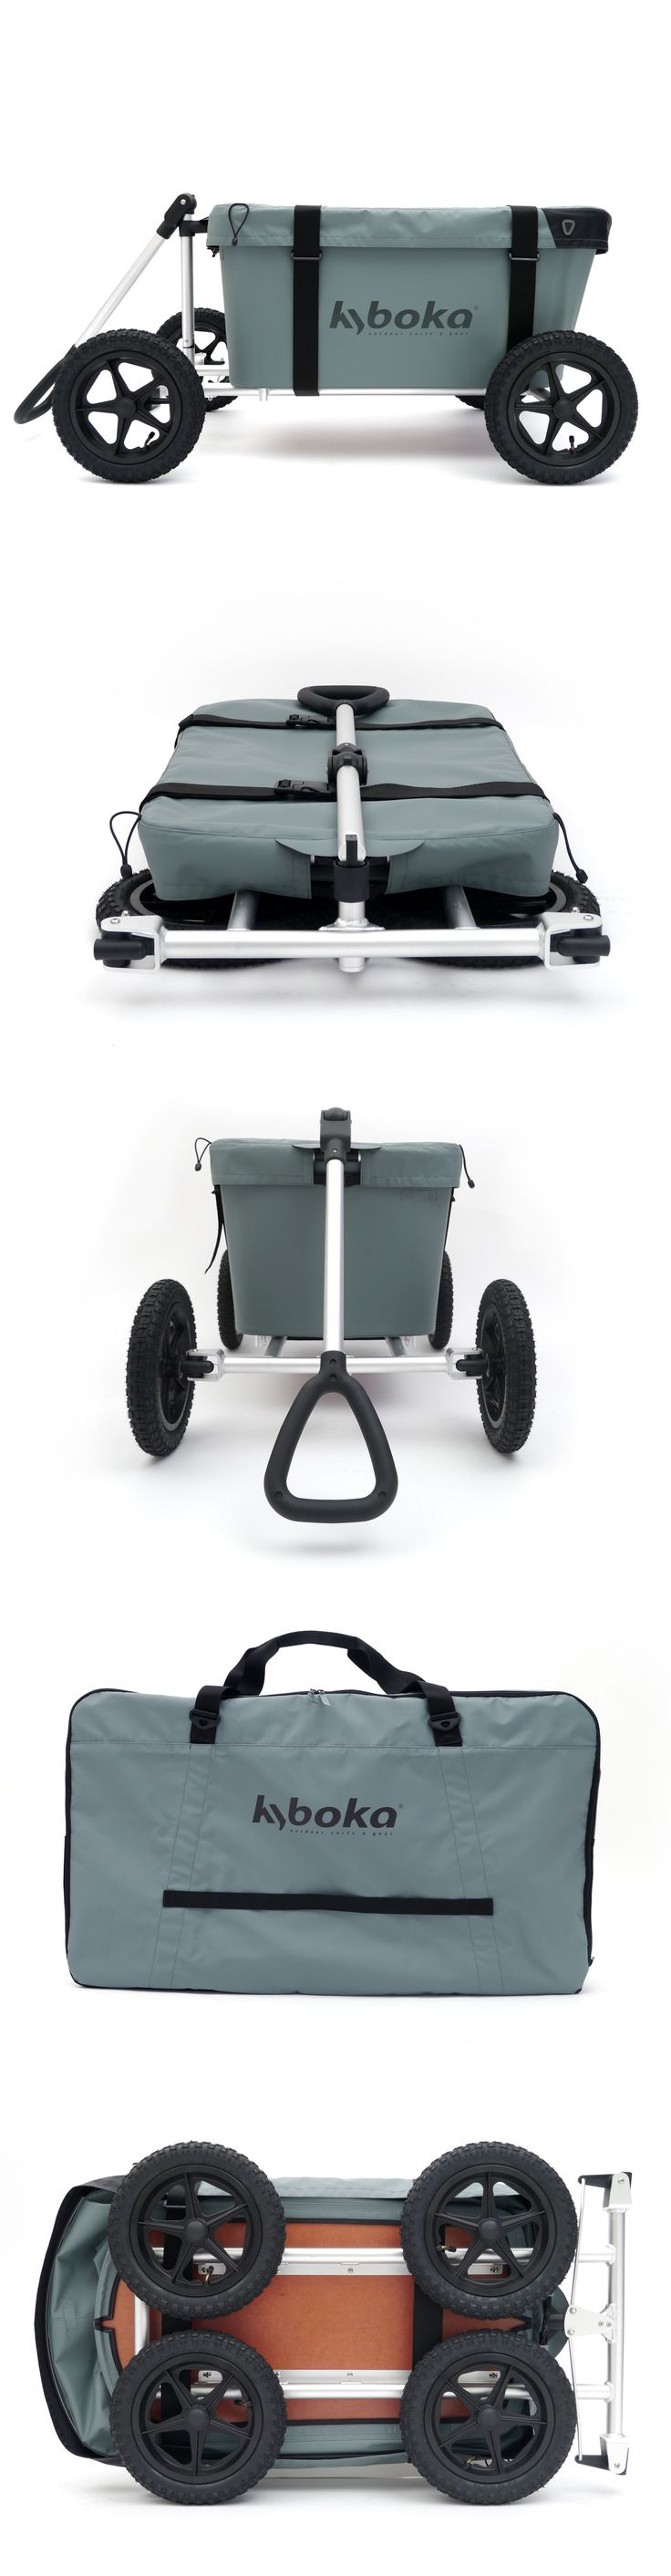 Dutch design! Cart for outdoor use, foldable into a small package. Light weight, ergonomic and easy to tow. / TechNews24h.com #technews24h